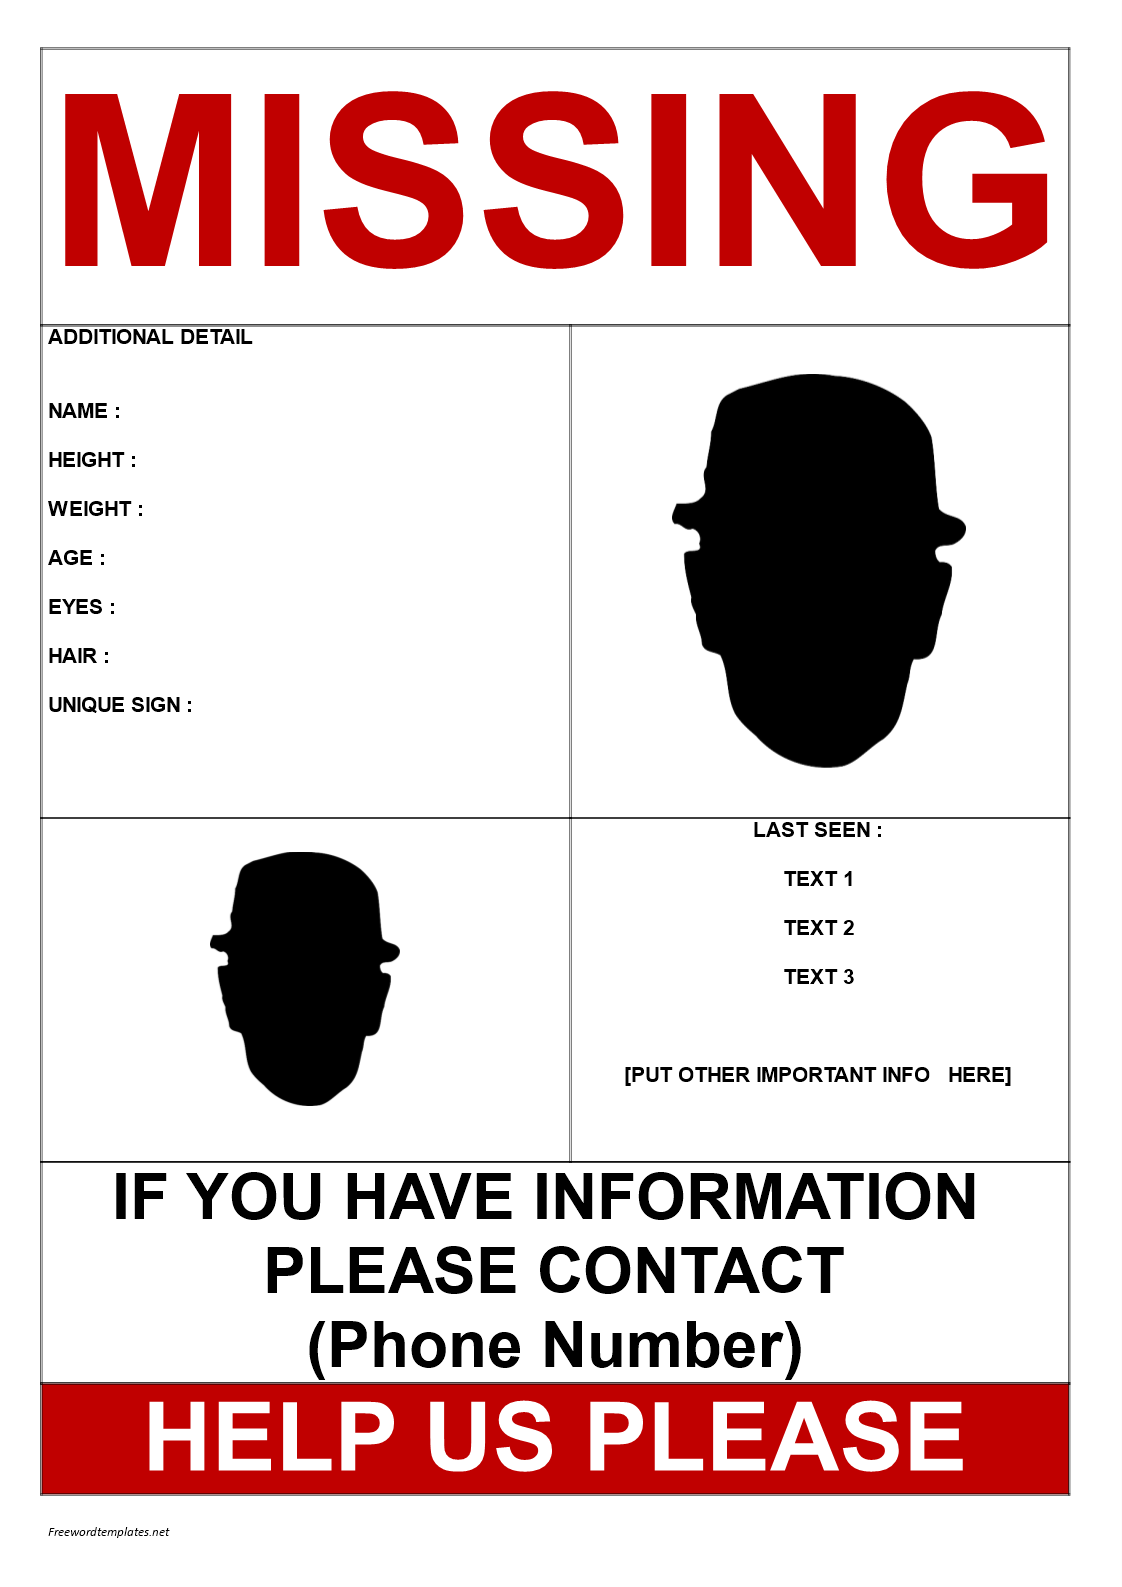 Elegant Missing Person Template 2 Pics A3 Size Main Image  Missing Person Poster Template